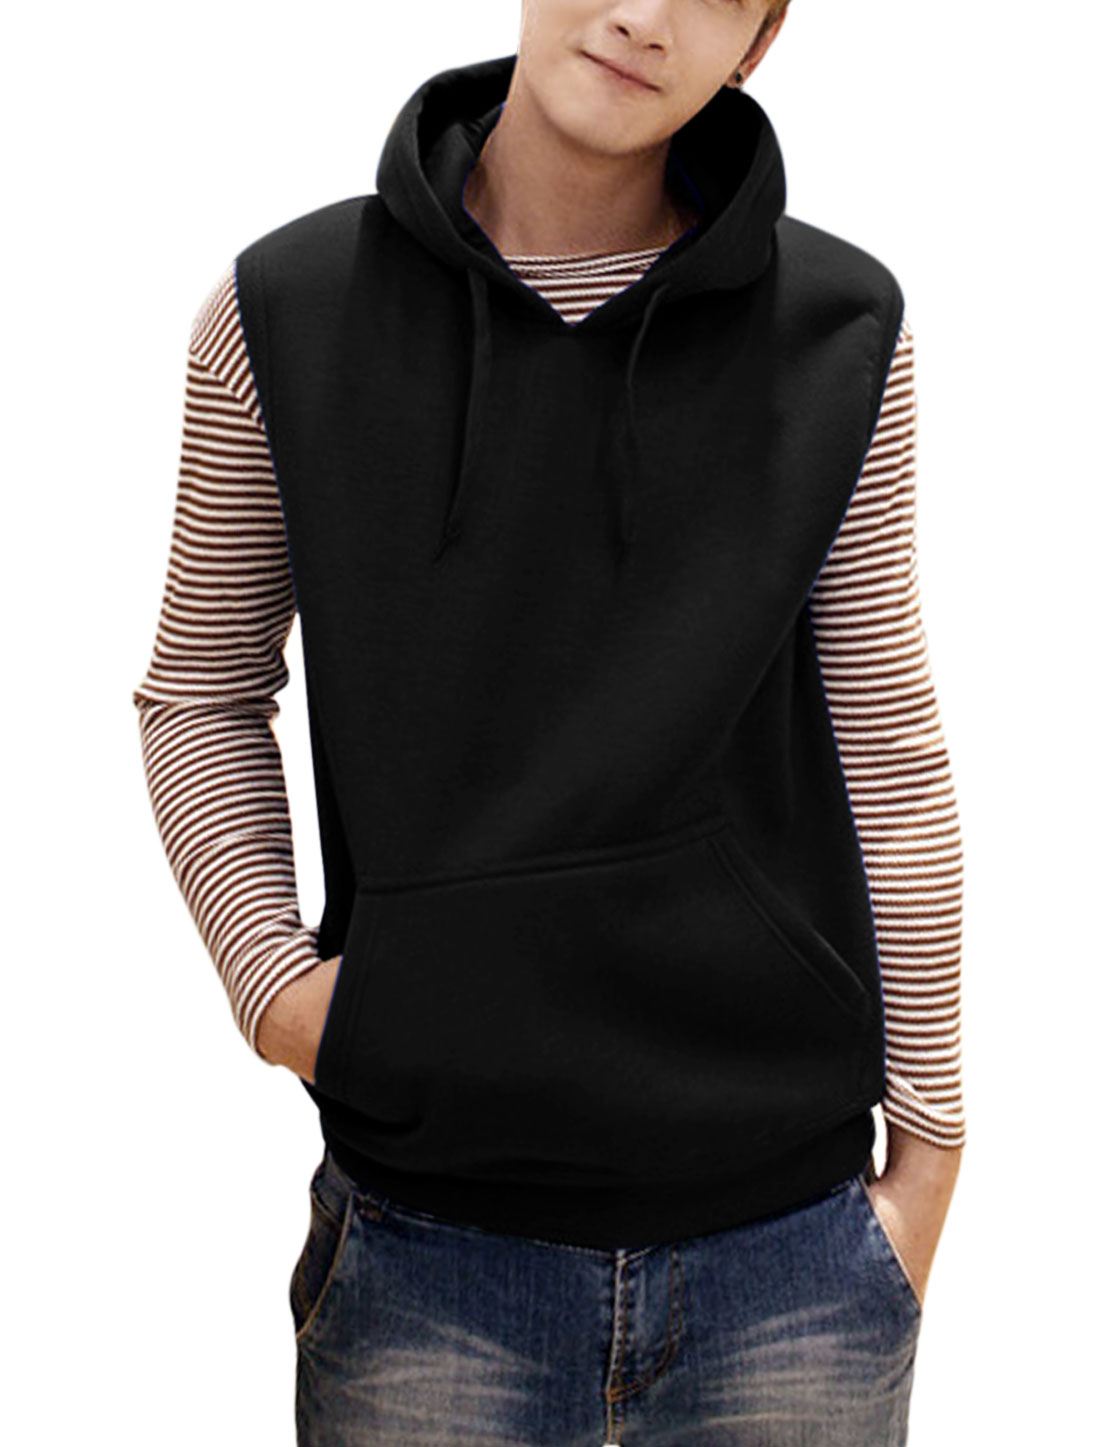 Men Fashion Style Pullover Hooded Leisure Vest Black M